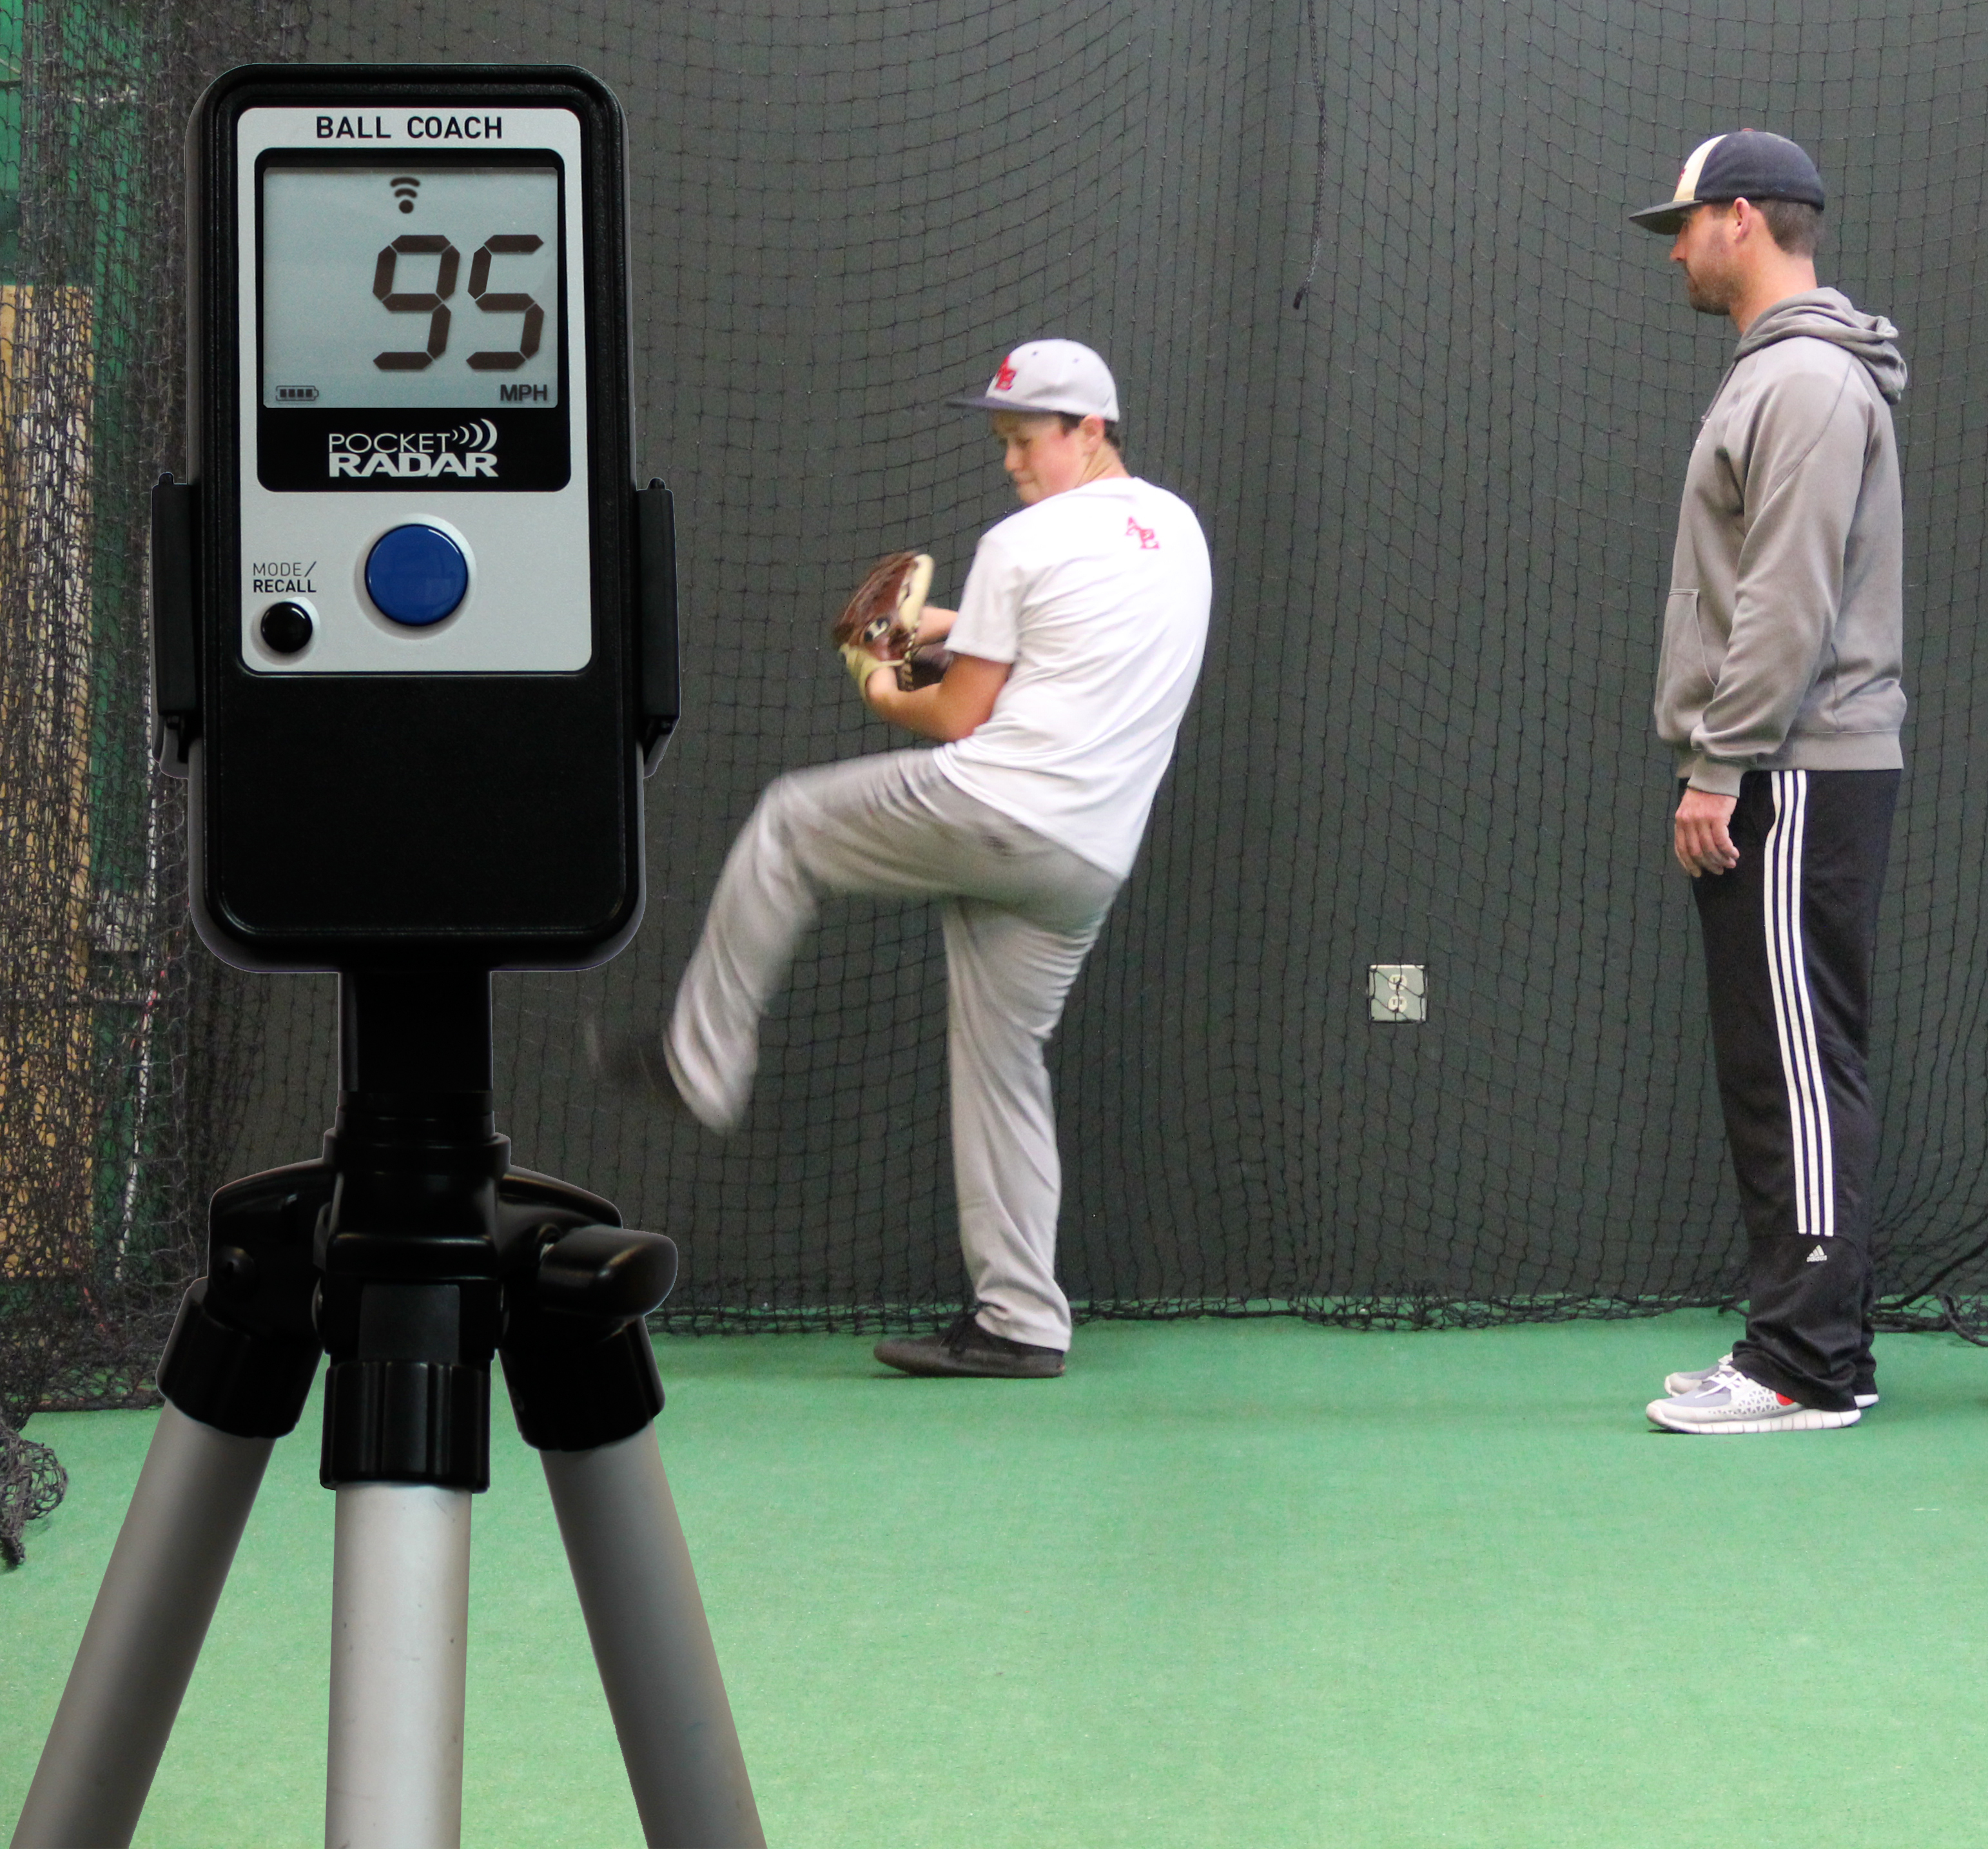 The Pocket Radar Ball Coach Radar is already being used by elite youth coaches as an invaluable tool to develop player pitching and hitting mechanics. (Photo: Business Wire)